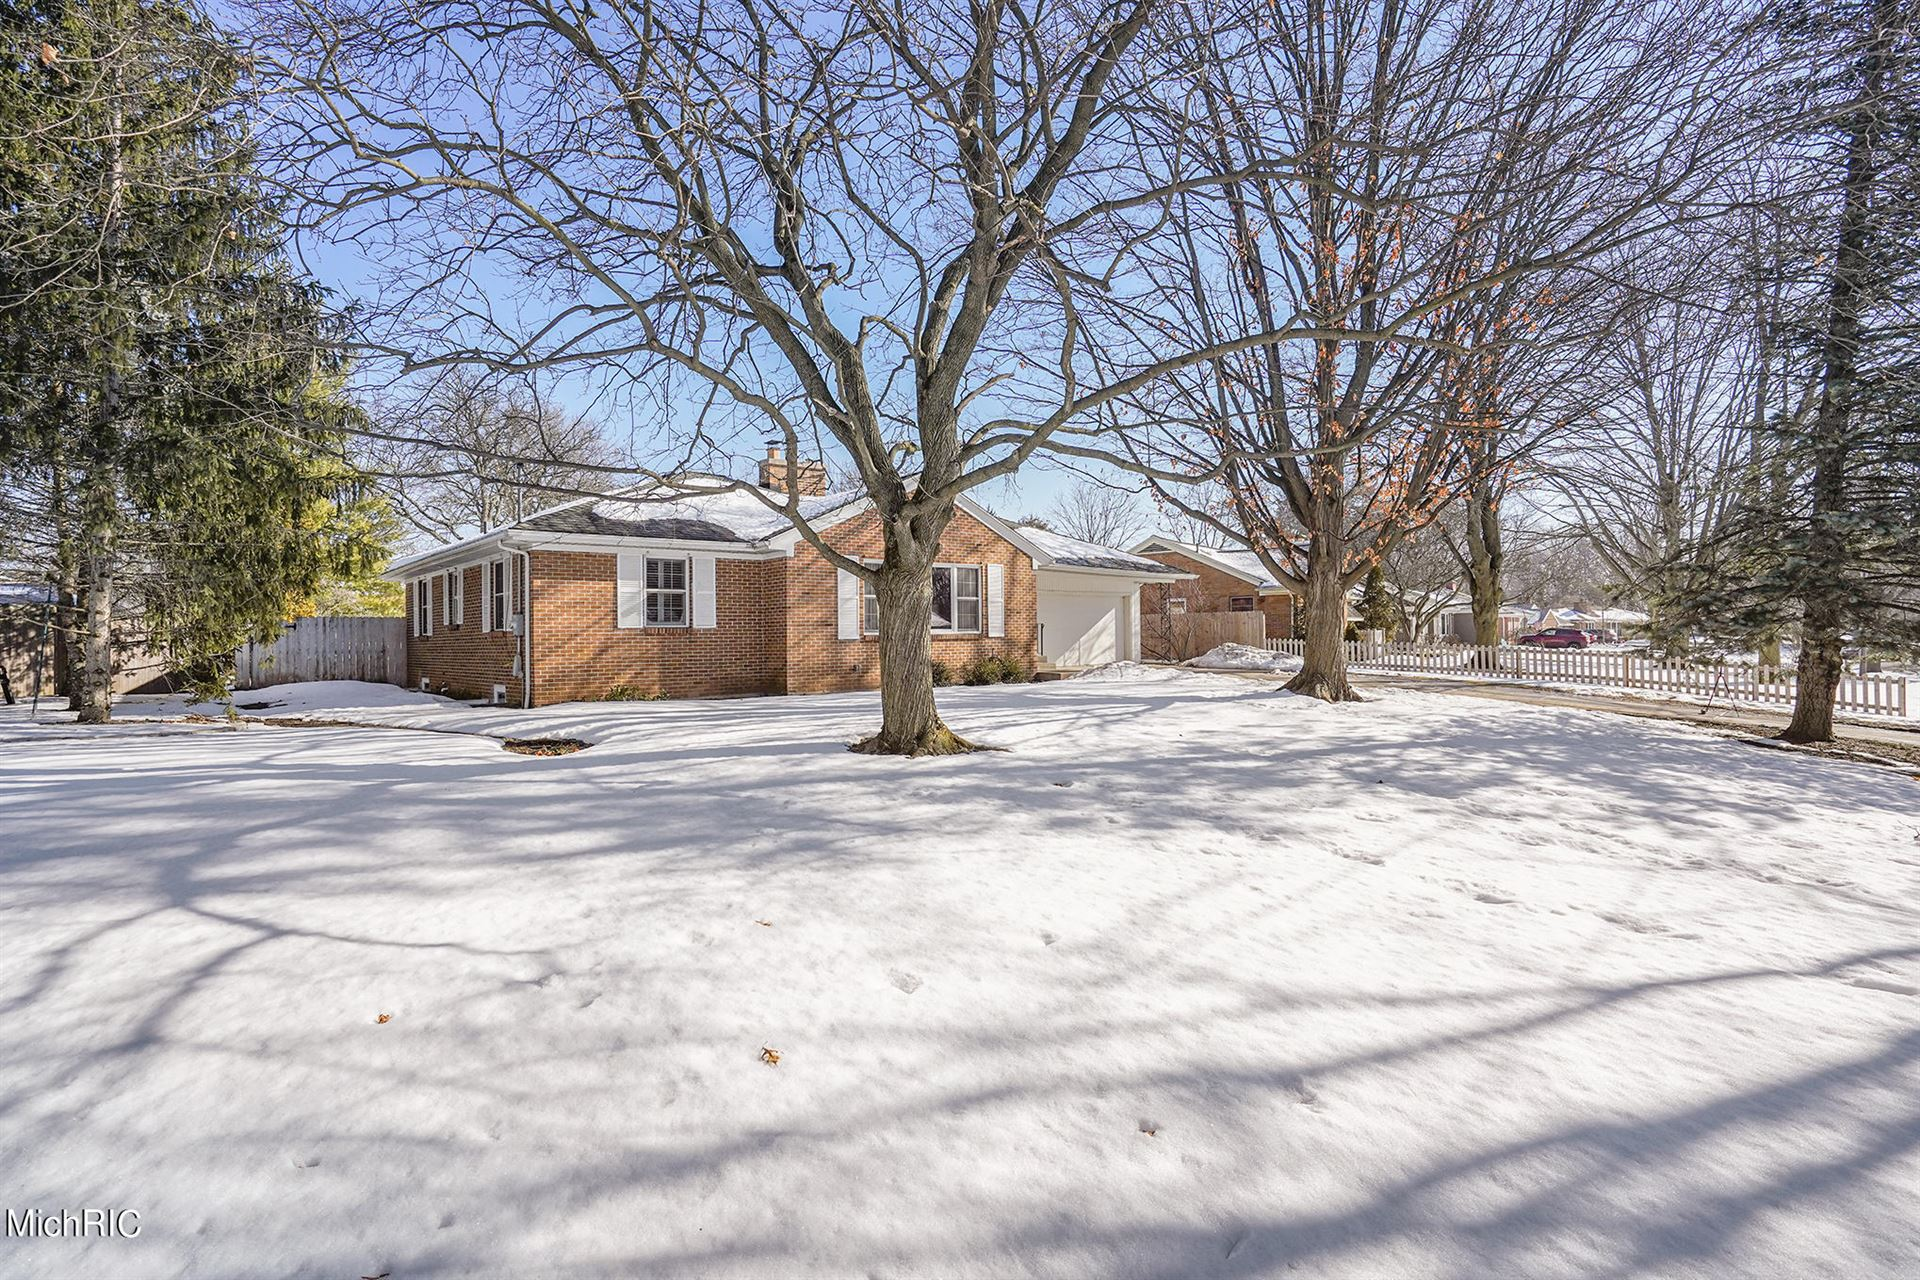 170 Hodenpyl Road SE, East Grand Rapids, MI 49506 - MLS#: 21005831